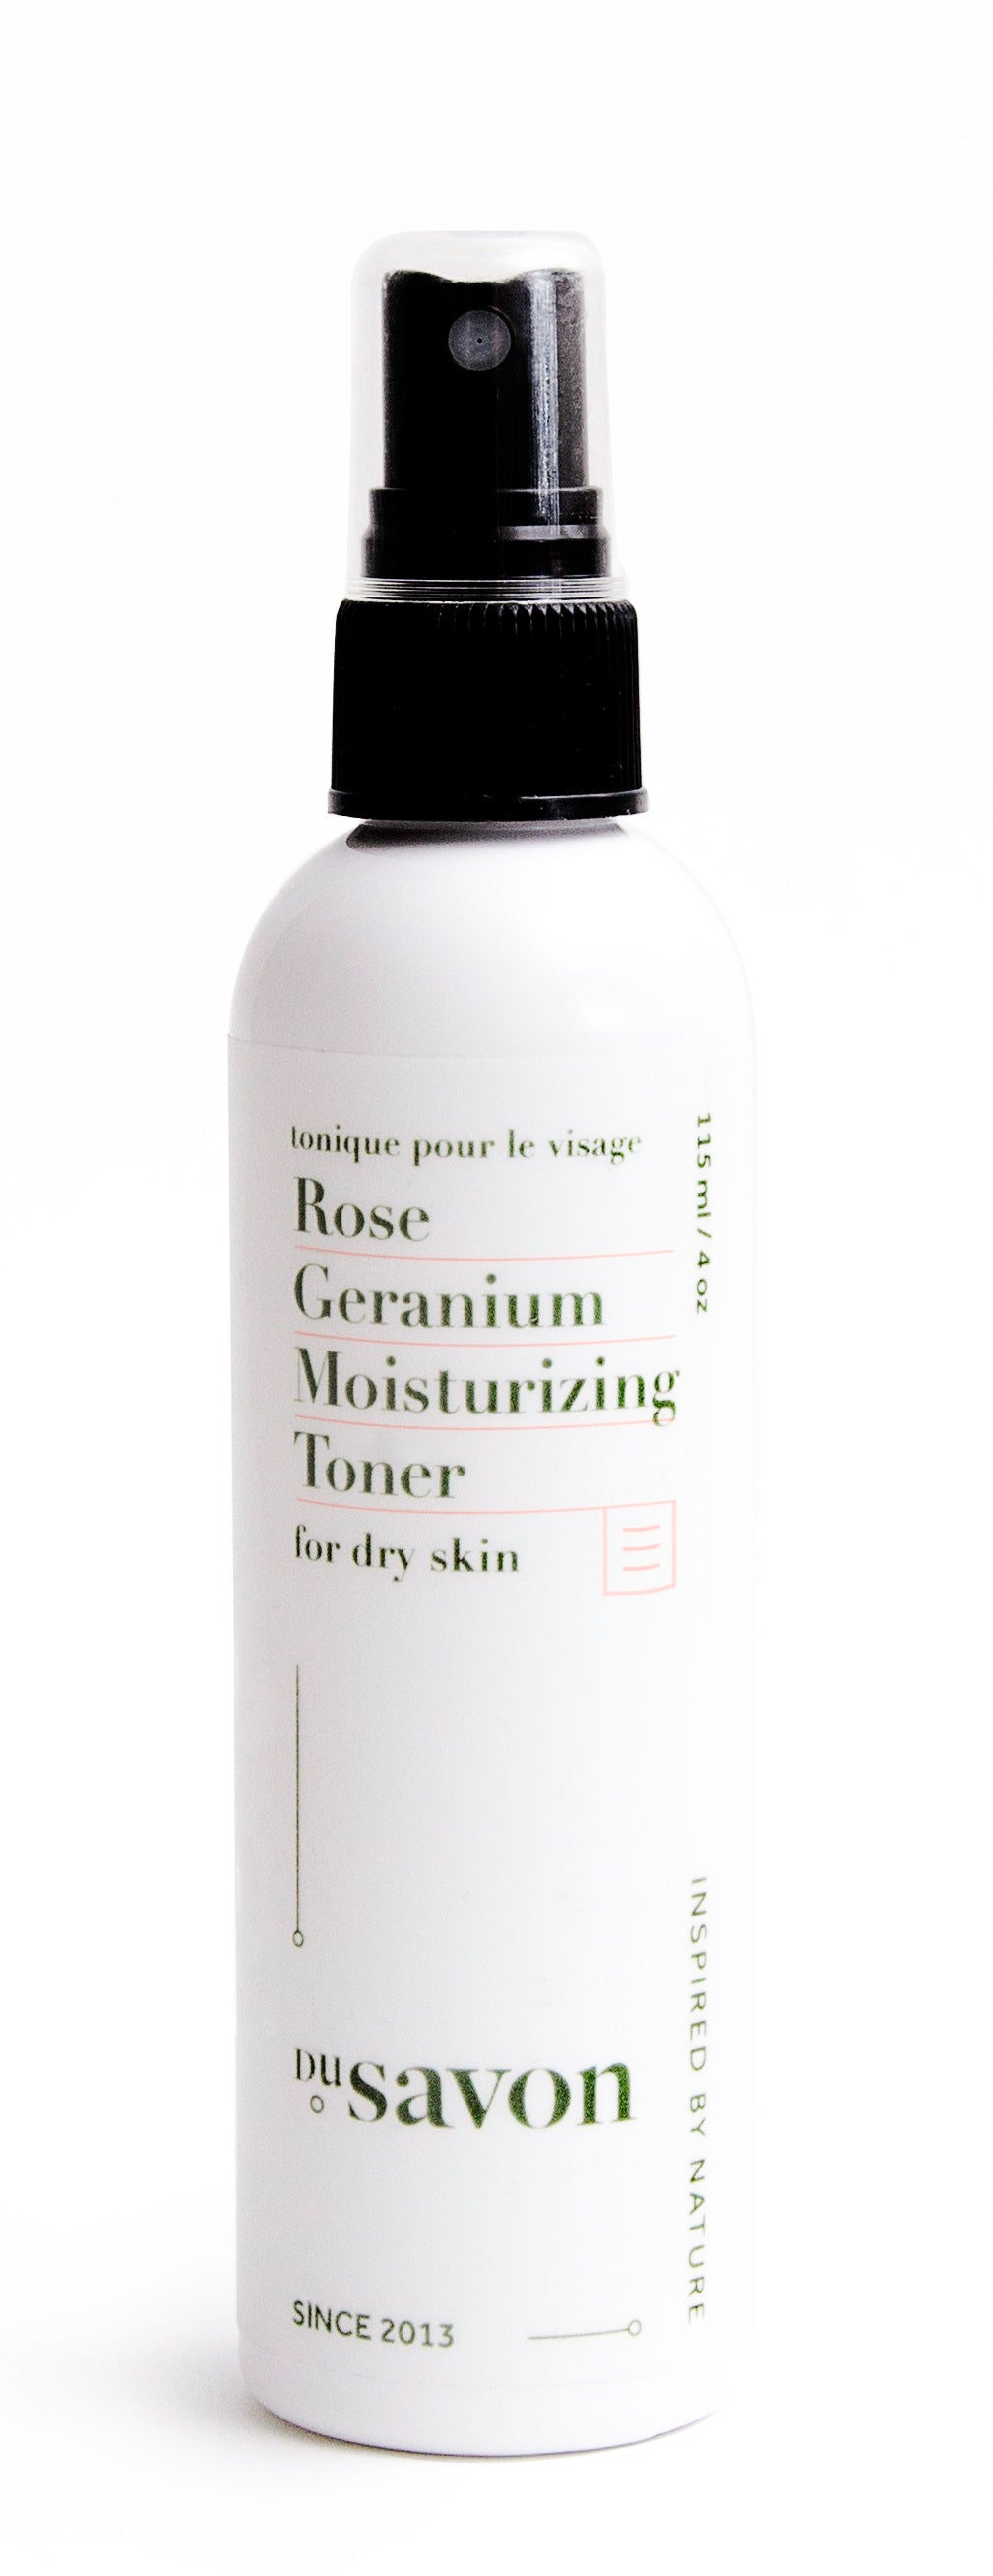 Rose Geranium Moisturizing Toner for Dry Skin